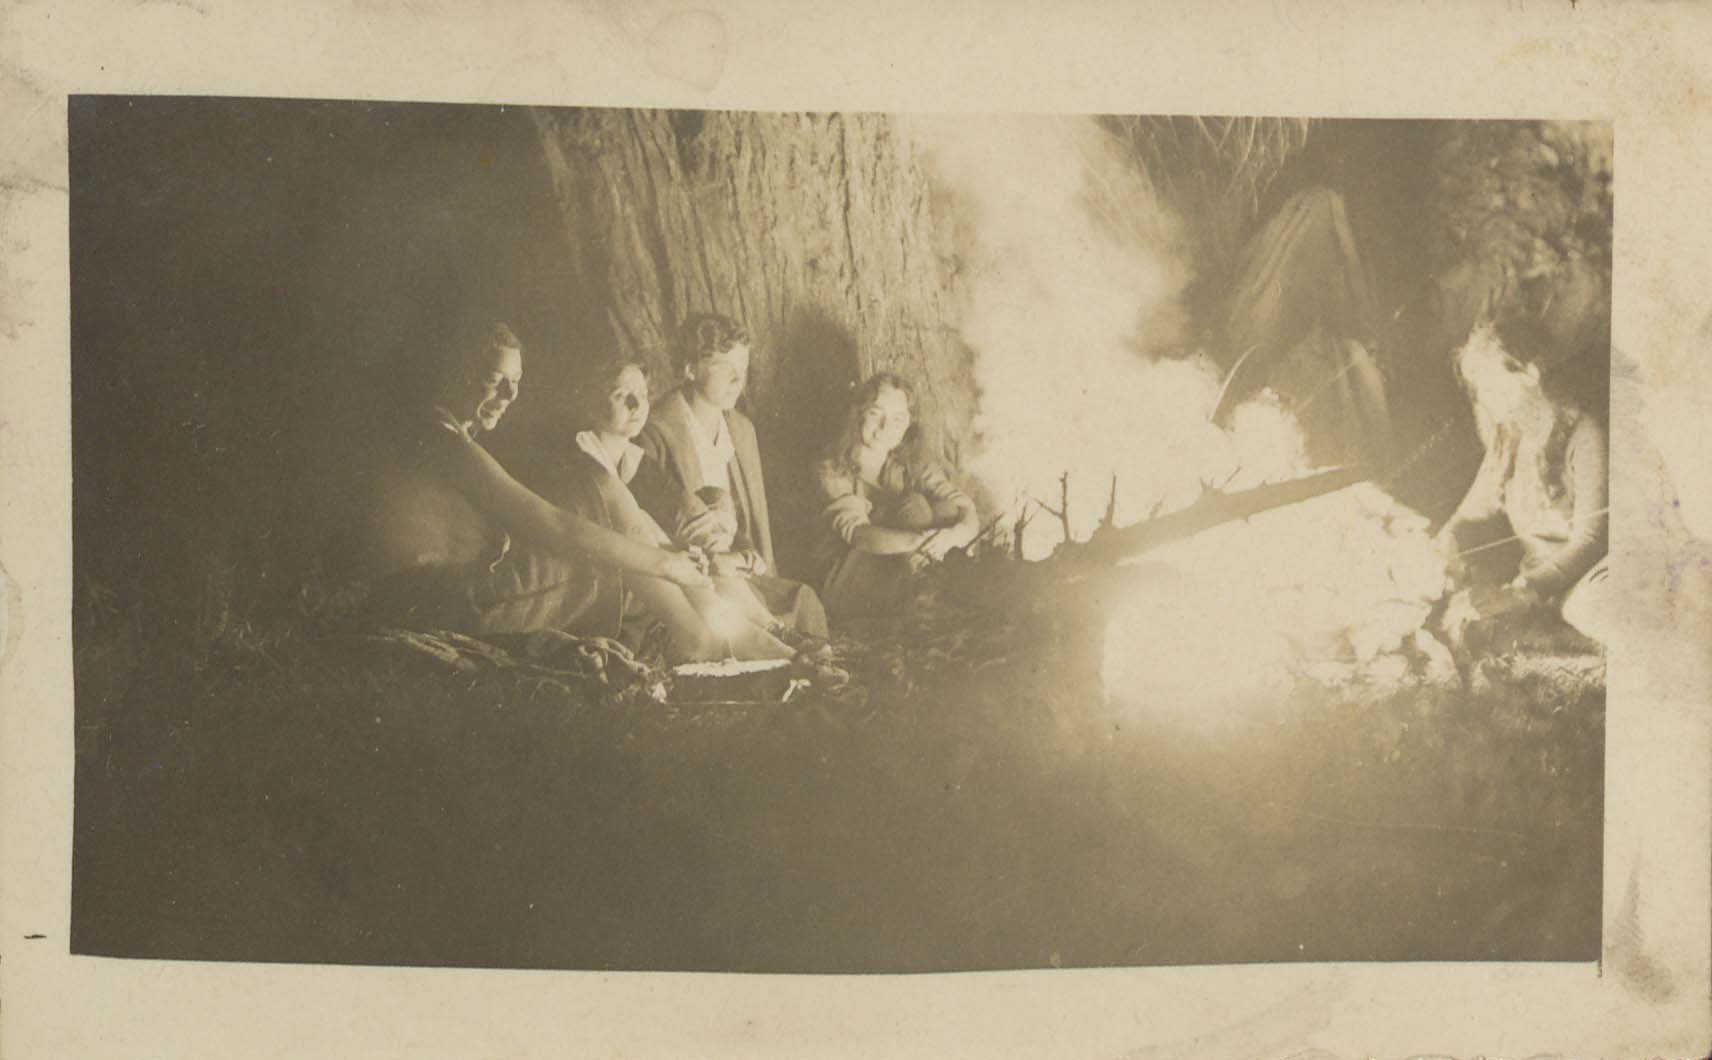 Birthday party with Mohawk Valley Hiking Club members Gertrude Schaefer Fogarty, Marion Lipe, Muriel Allen, and Carolyn Keseberg Schaefer, 1931.